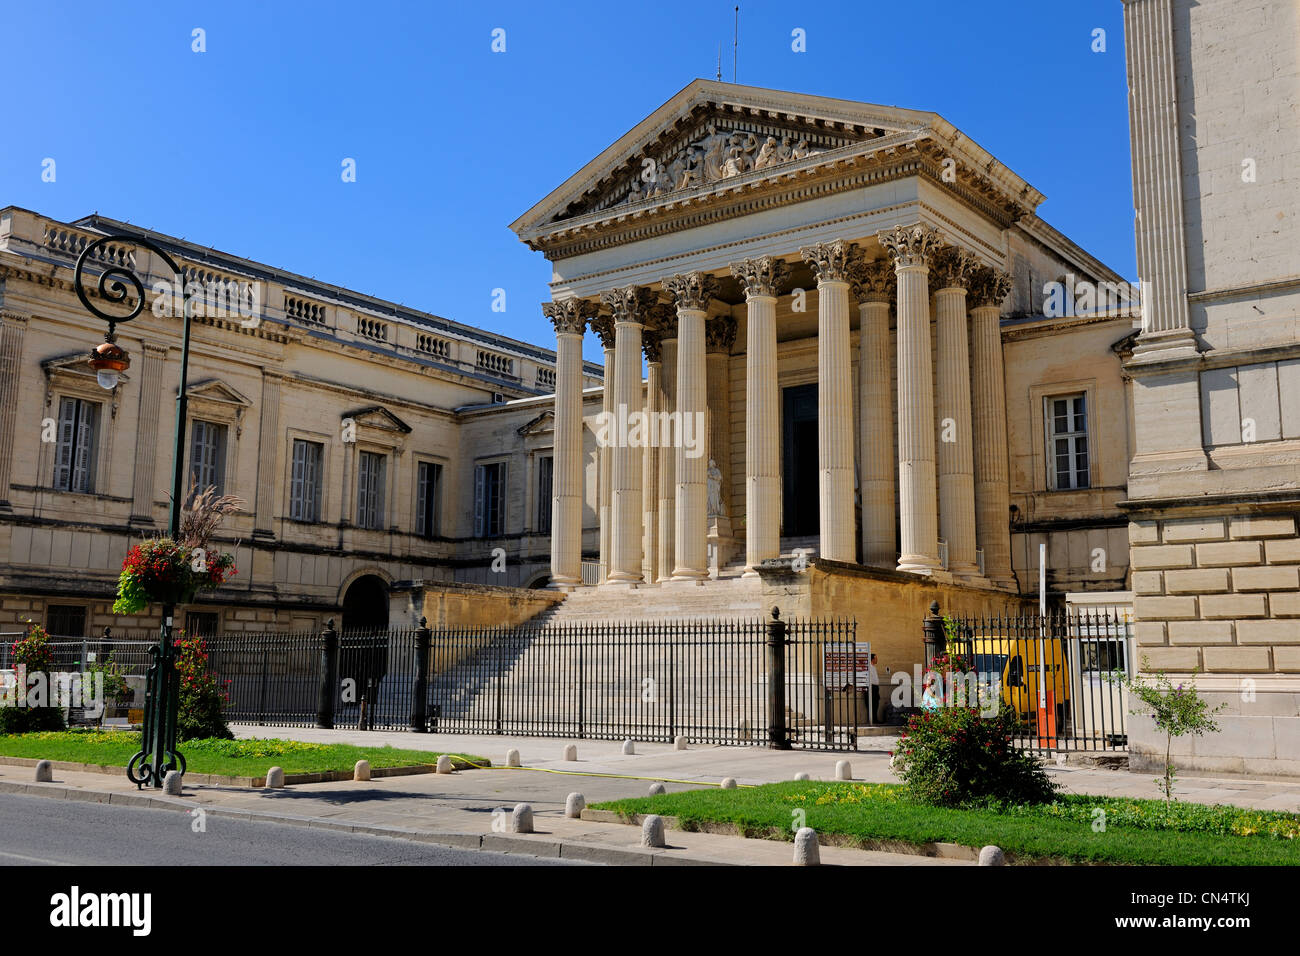 France, Herault, Montpellier, the Courthouse - Stock Image